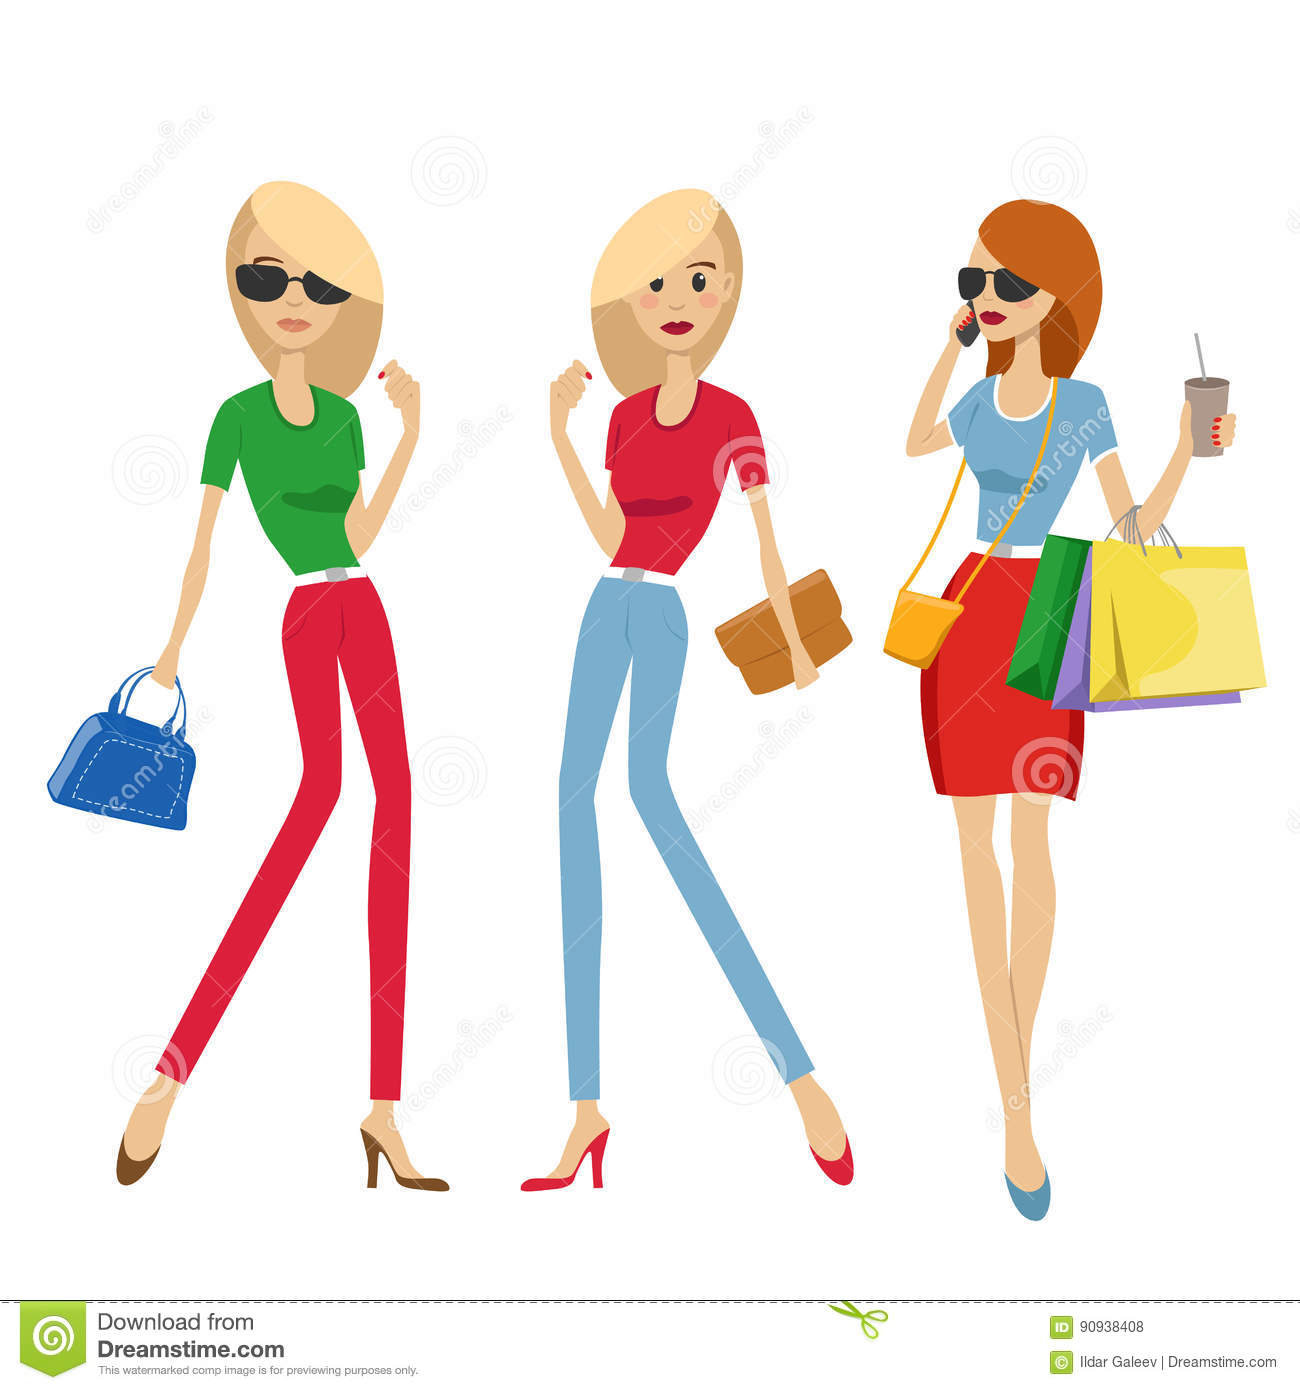 82a5db1f3e Royalty-Free Vector. Group of fashion women with shopping bags and handbags